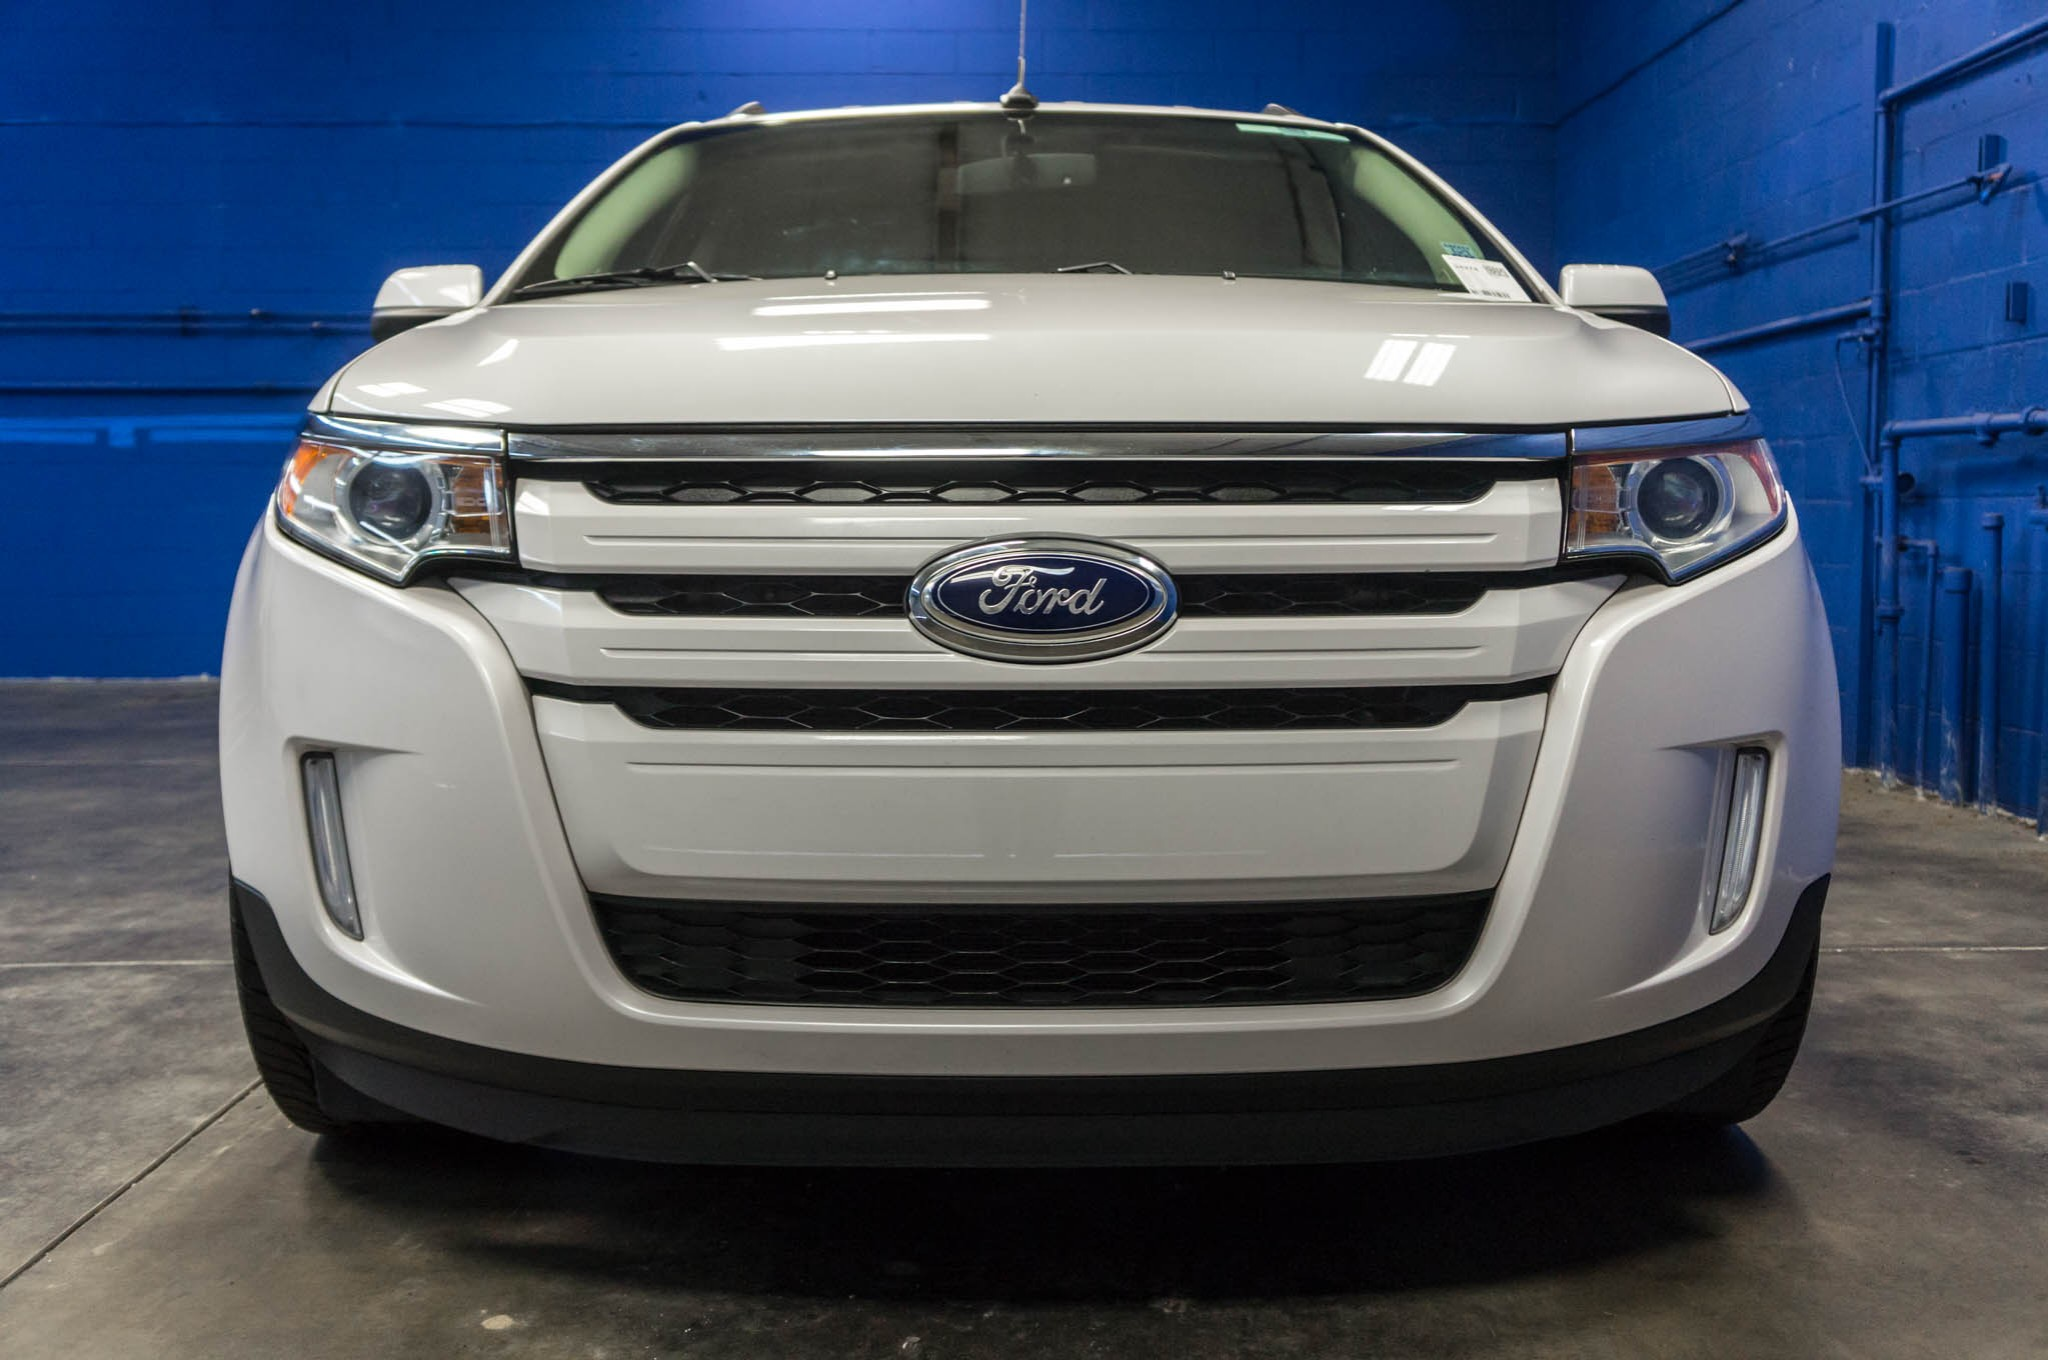 cars suv reviews trend sport ford edge fwd and rating motor wheel steering